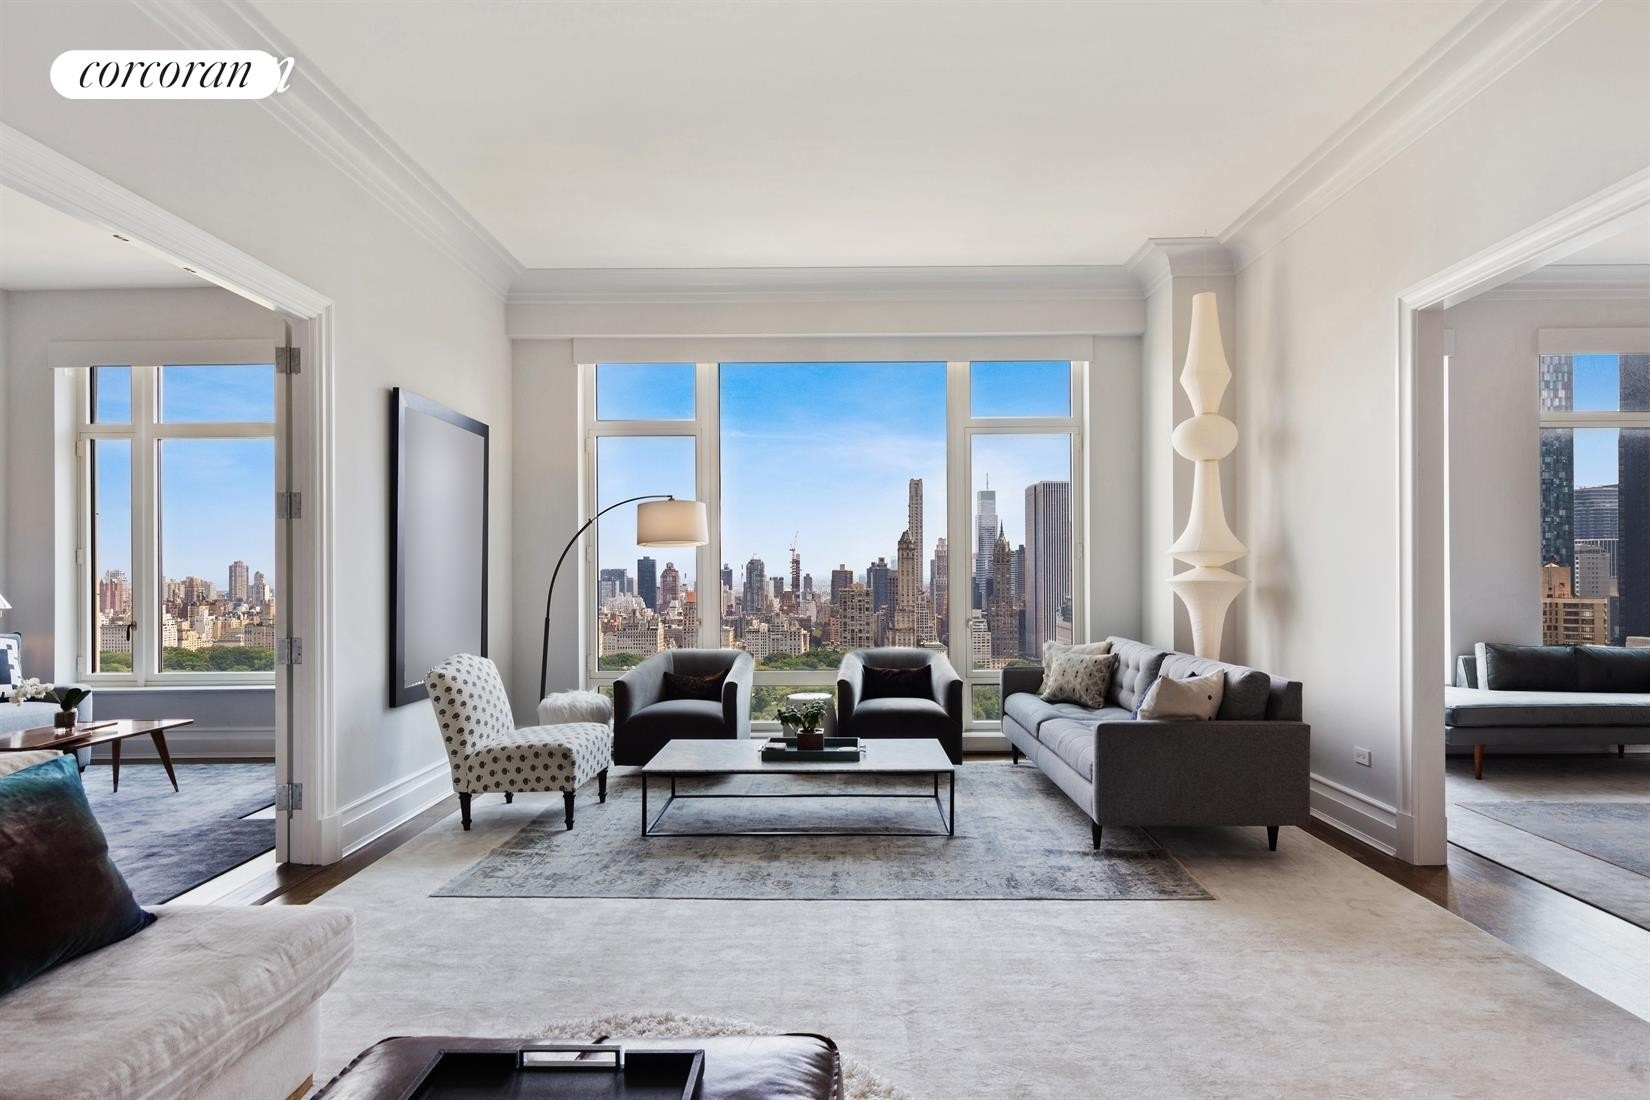 Property at 15 Central Park West, 32C Lincoln Square, New York, NY 10023